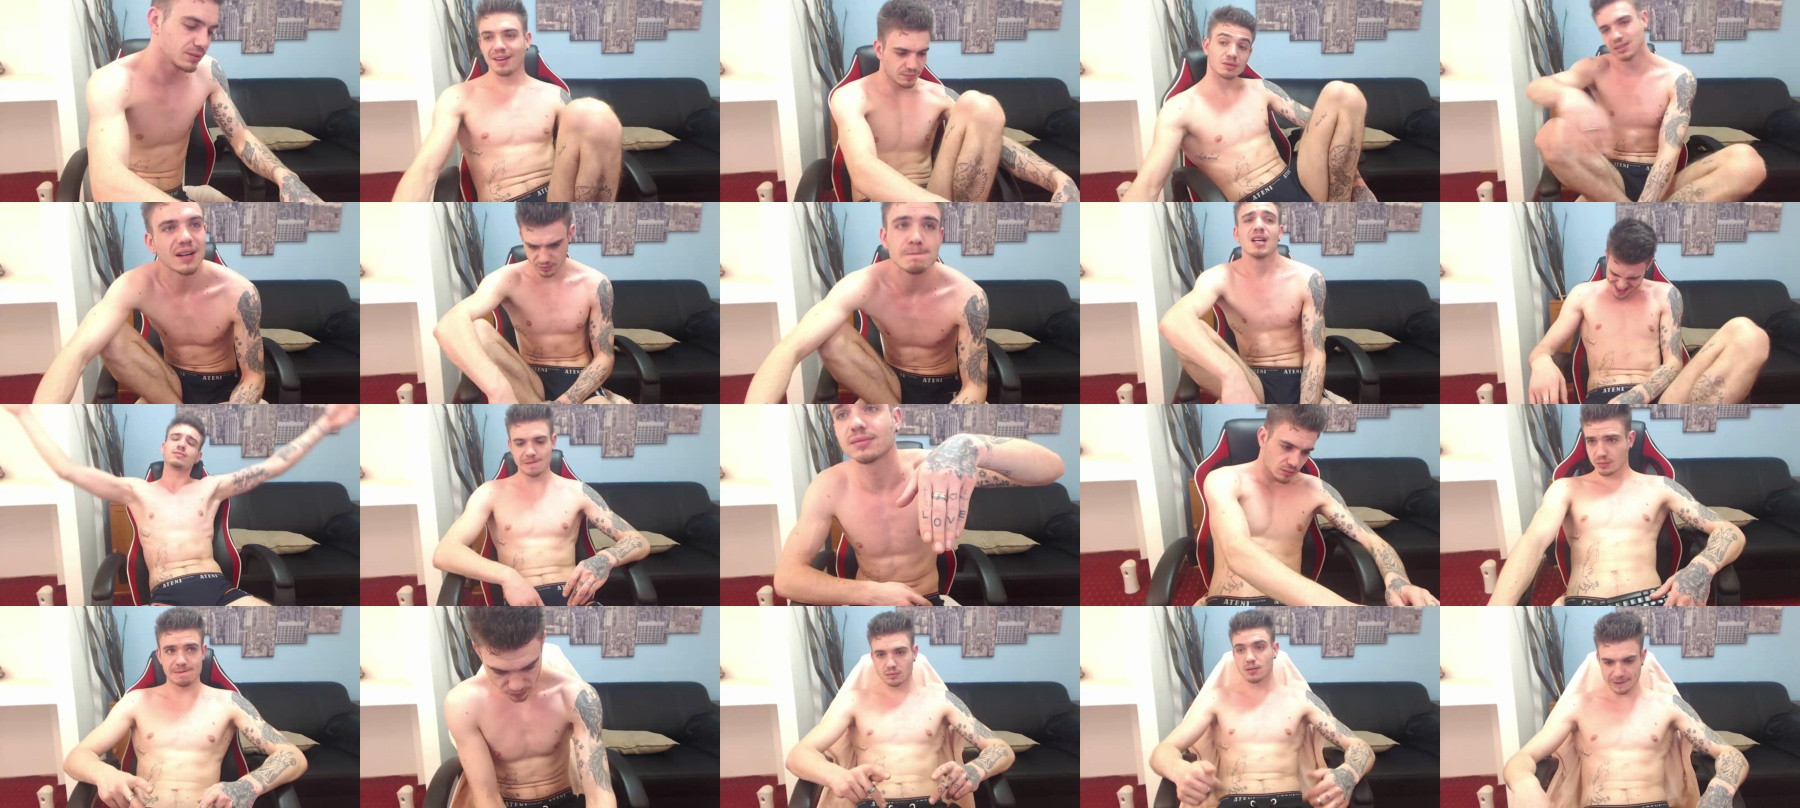 marc_twist Cam4 05-03-2021 Recorded Video XXX